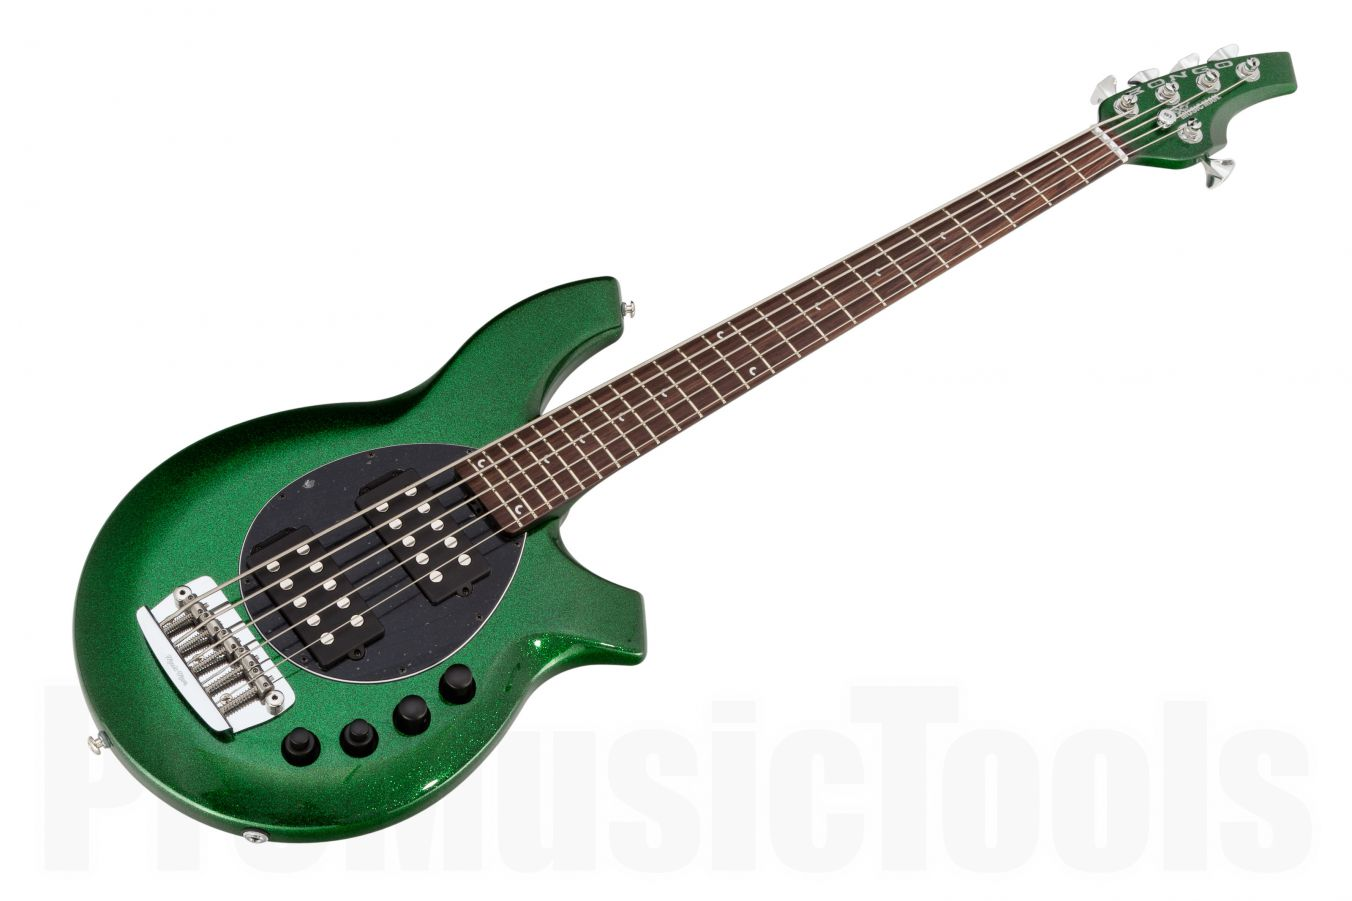 Music Man USA Bongo 5 HH ES - PDN Emerald Green Sparkle Limited Edition